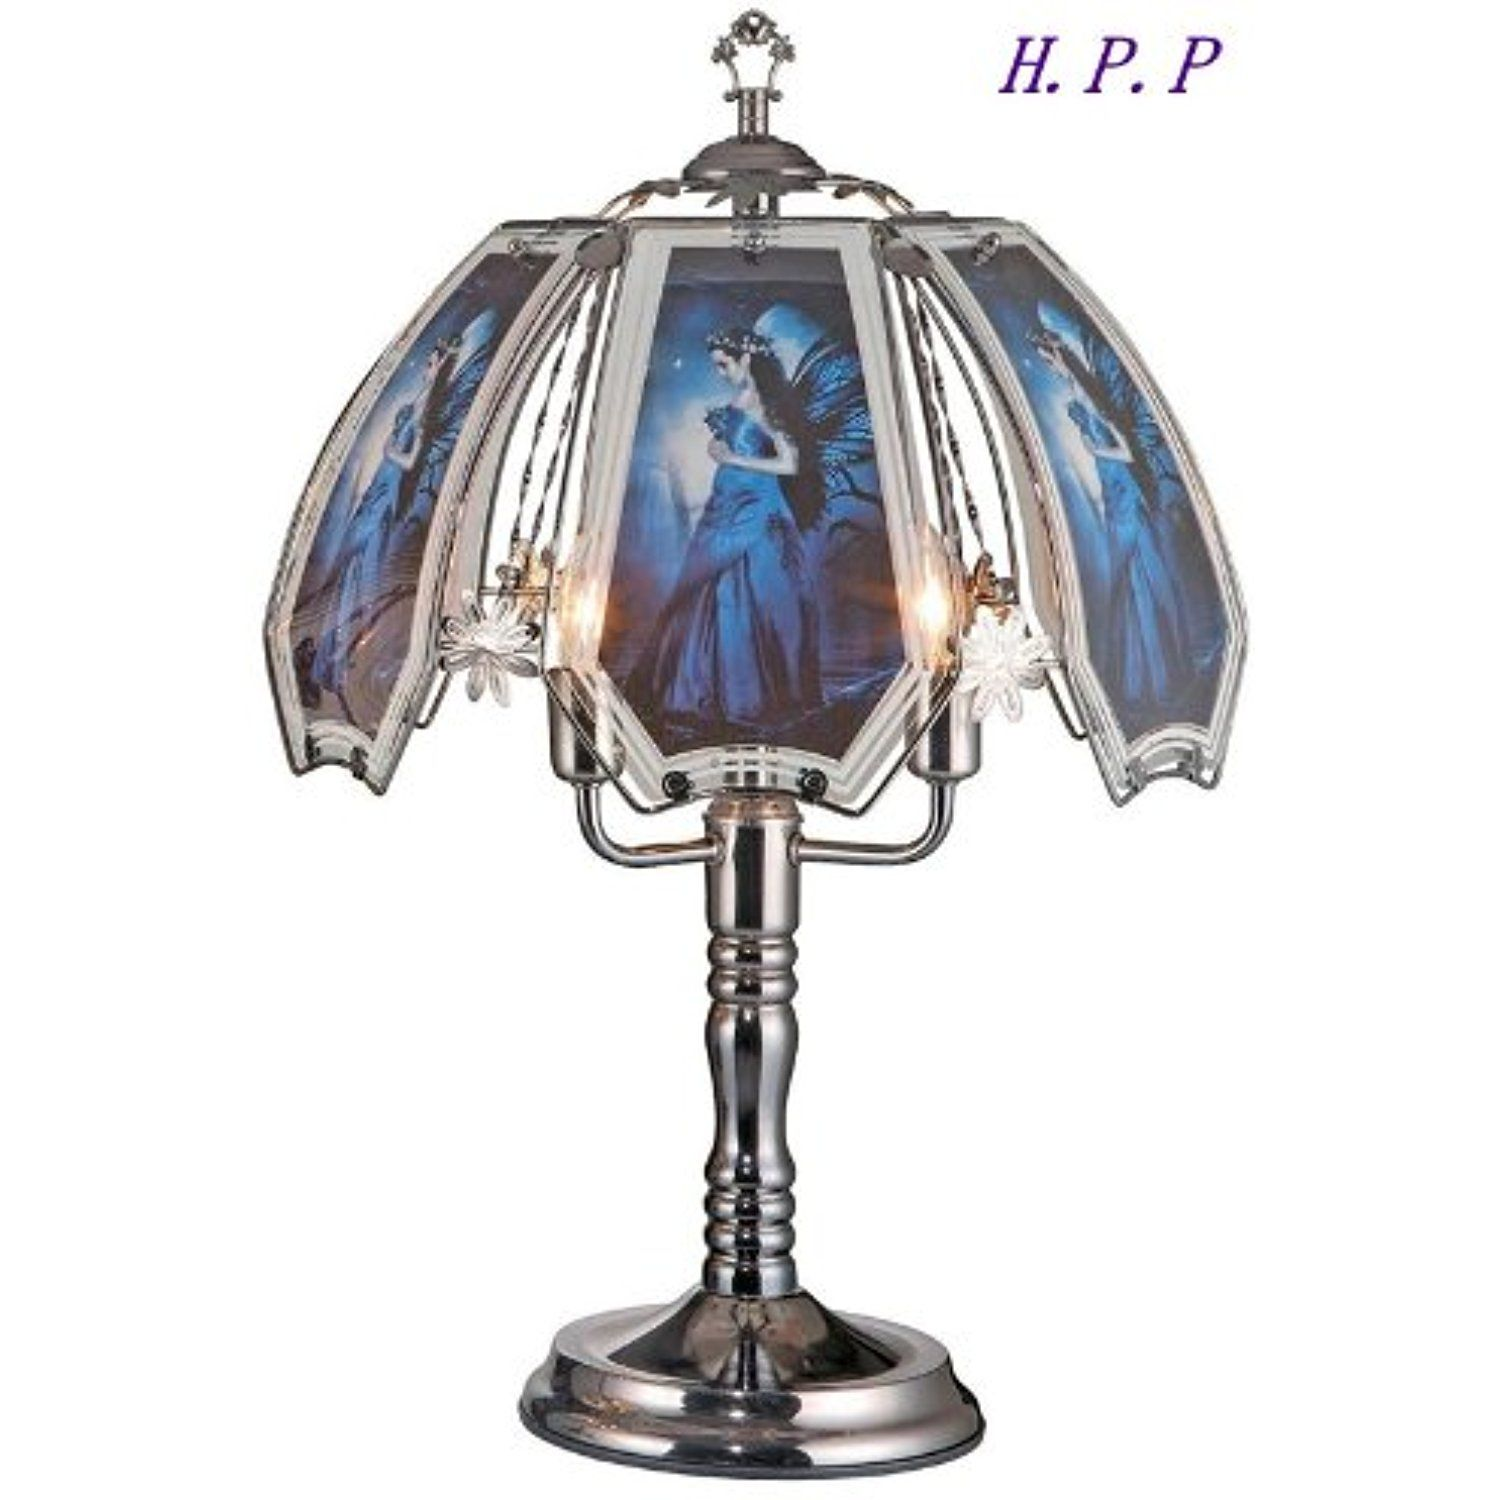 H P P 23 5 H New Glass Fairy Touch Table Lamp W Dark Chrome Finish Base You Can Get Additional Details At The I Touch Lamp Touch Table Lamps Black Lamps